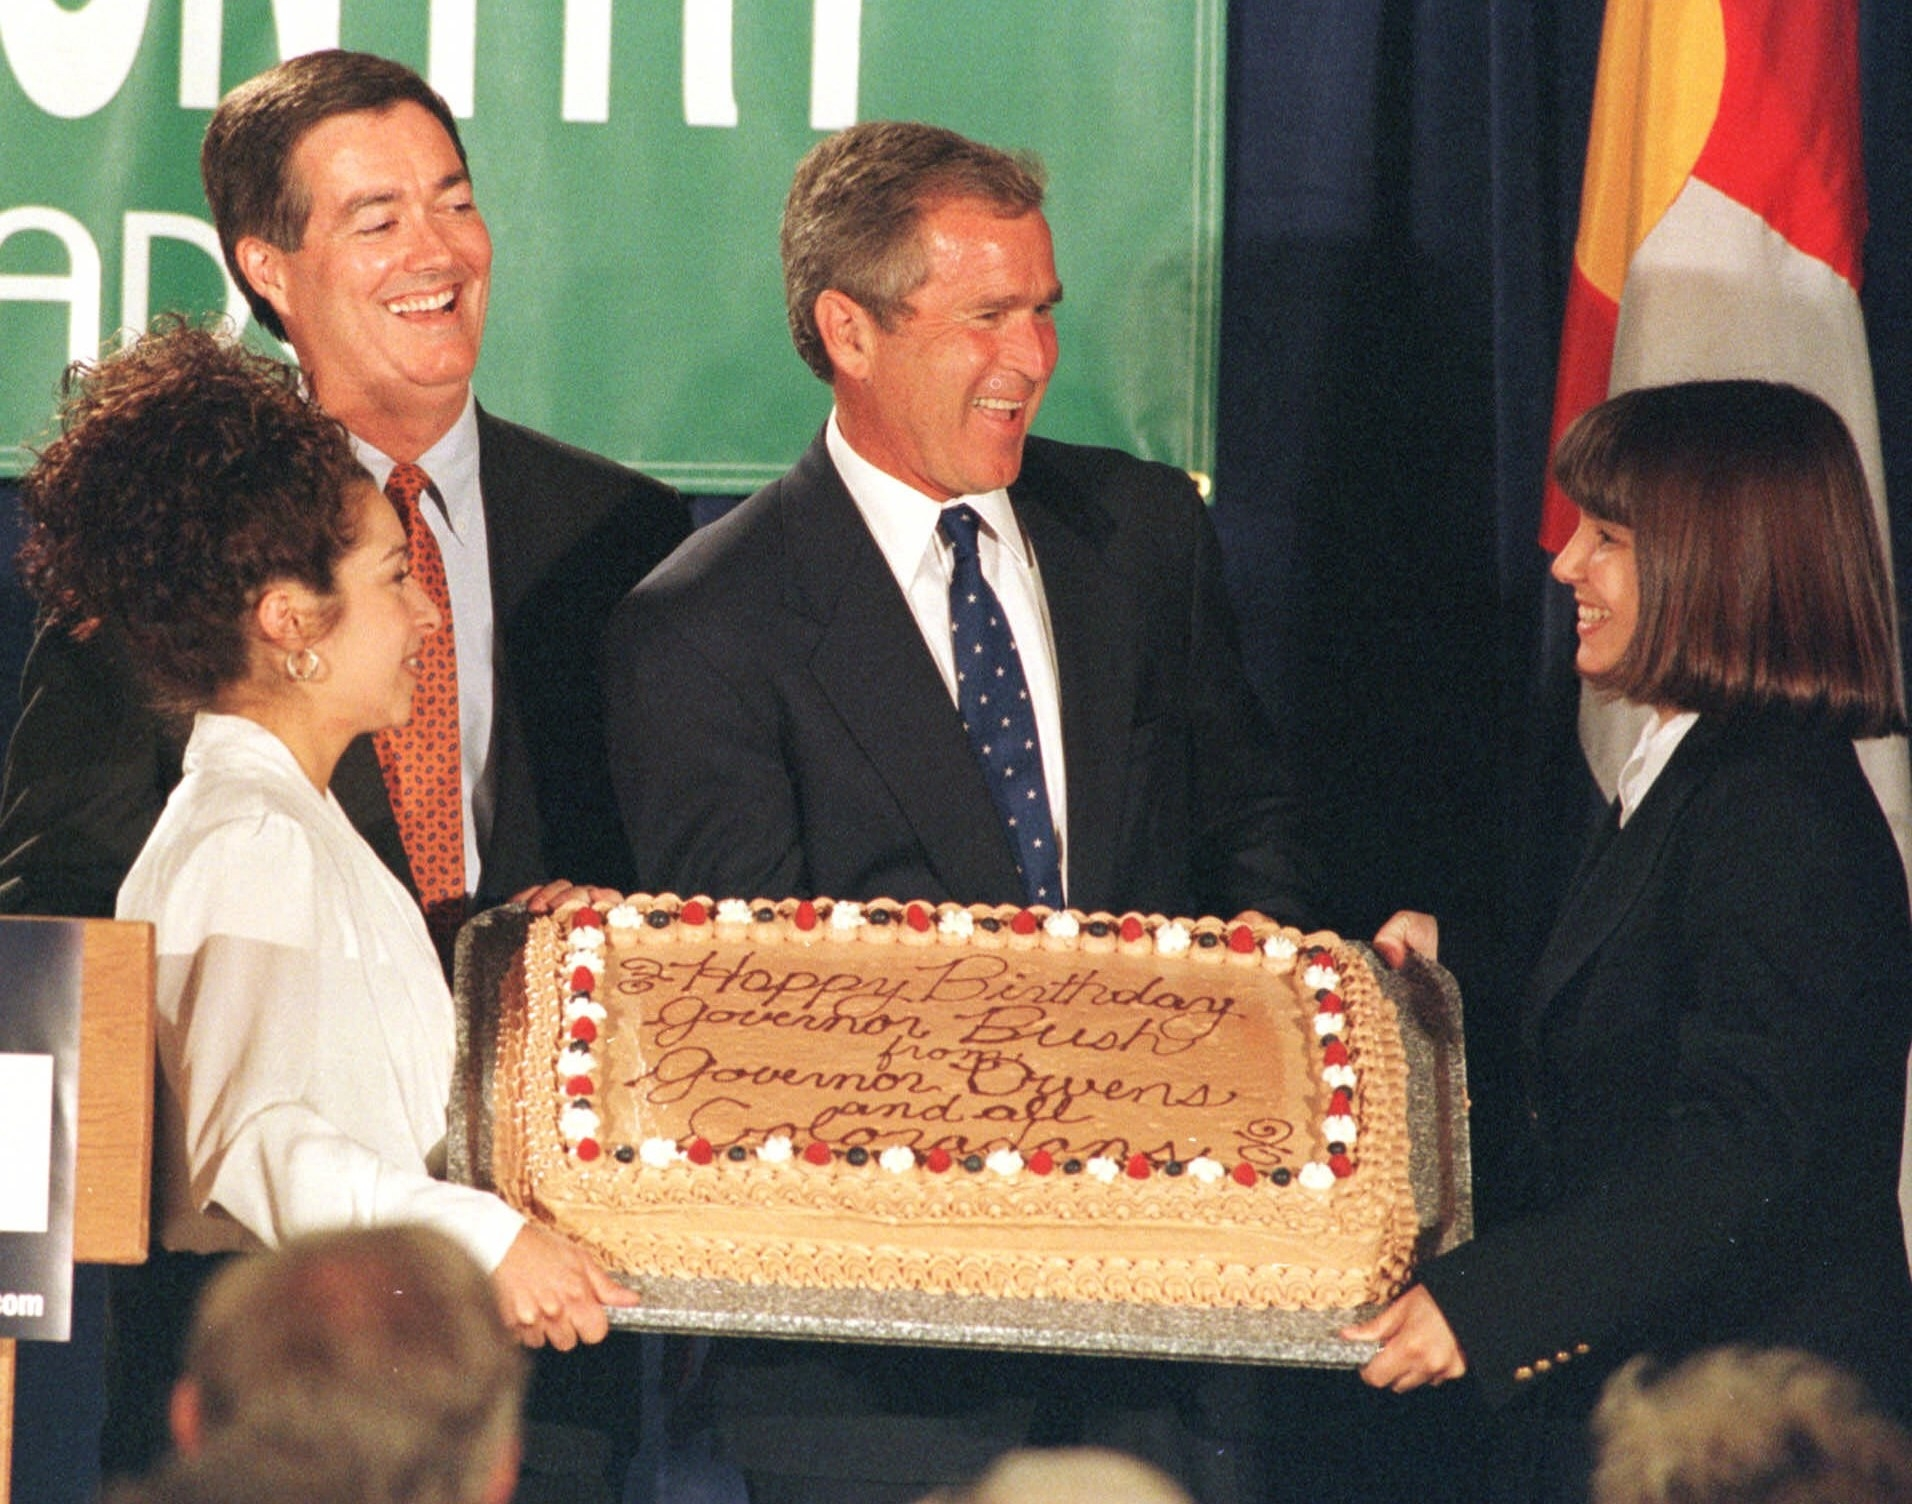 George Bush on stage with two women in front of him holding a birthday cake